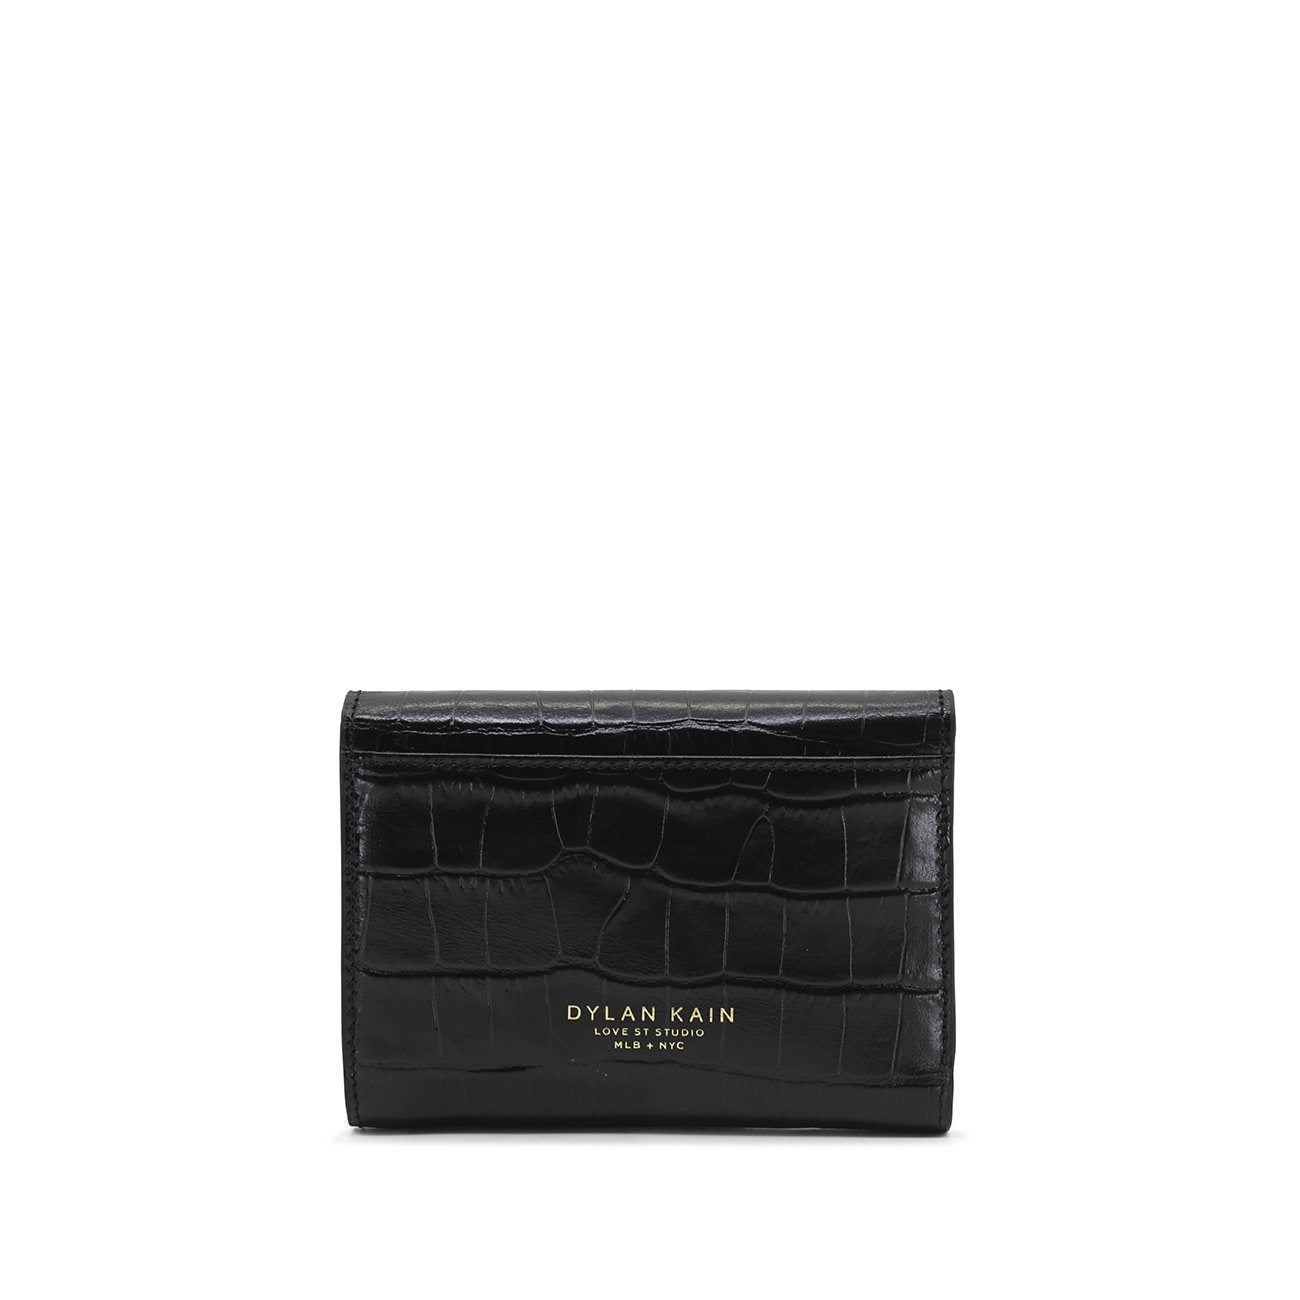 DYLAN KAIN | The Helena Wallet - Light Gold